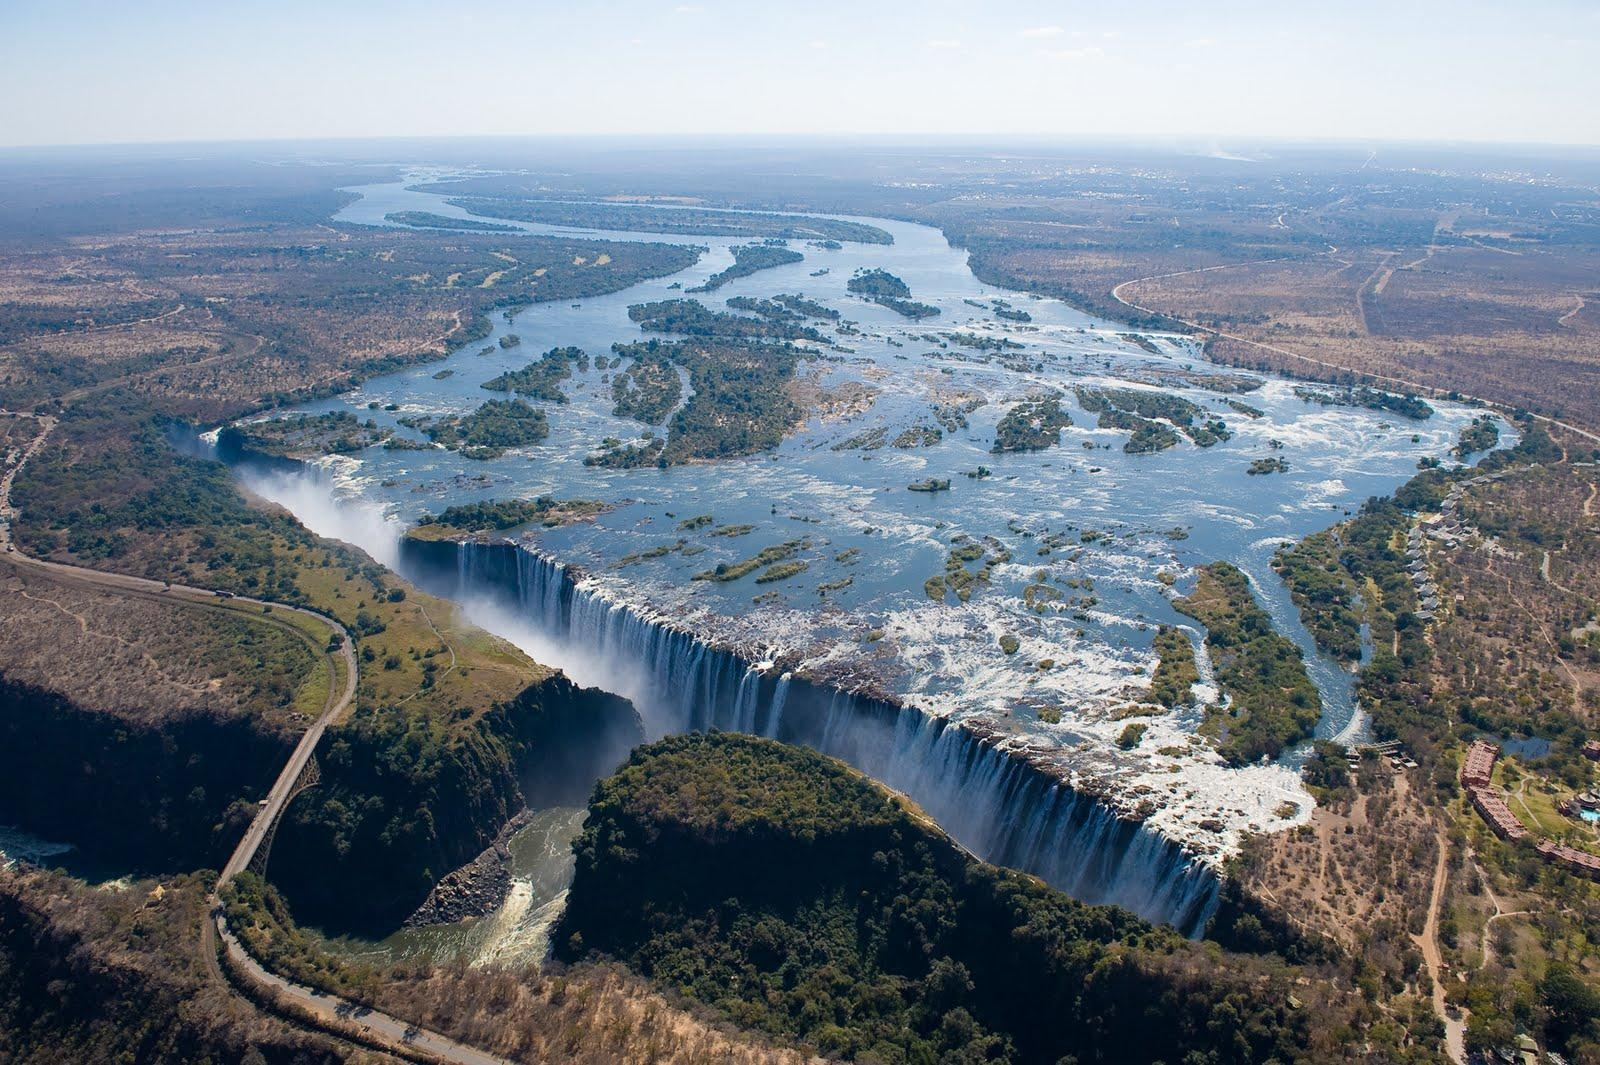 Wallpapers of gazed flight victoria falls africa Stock Free Image